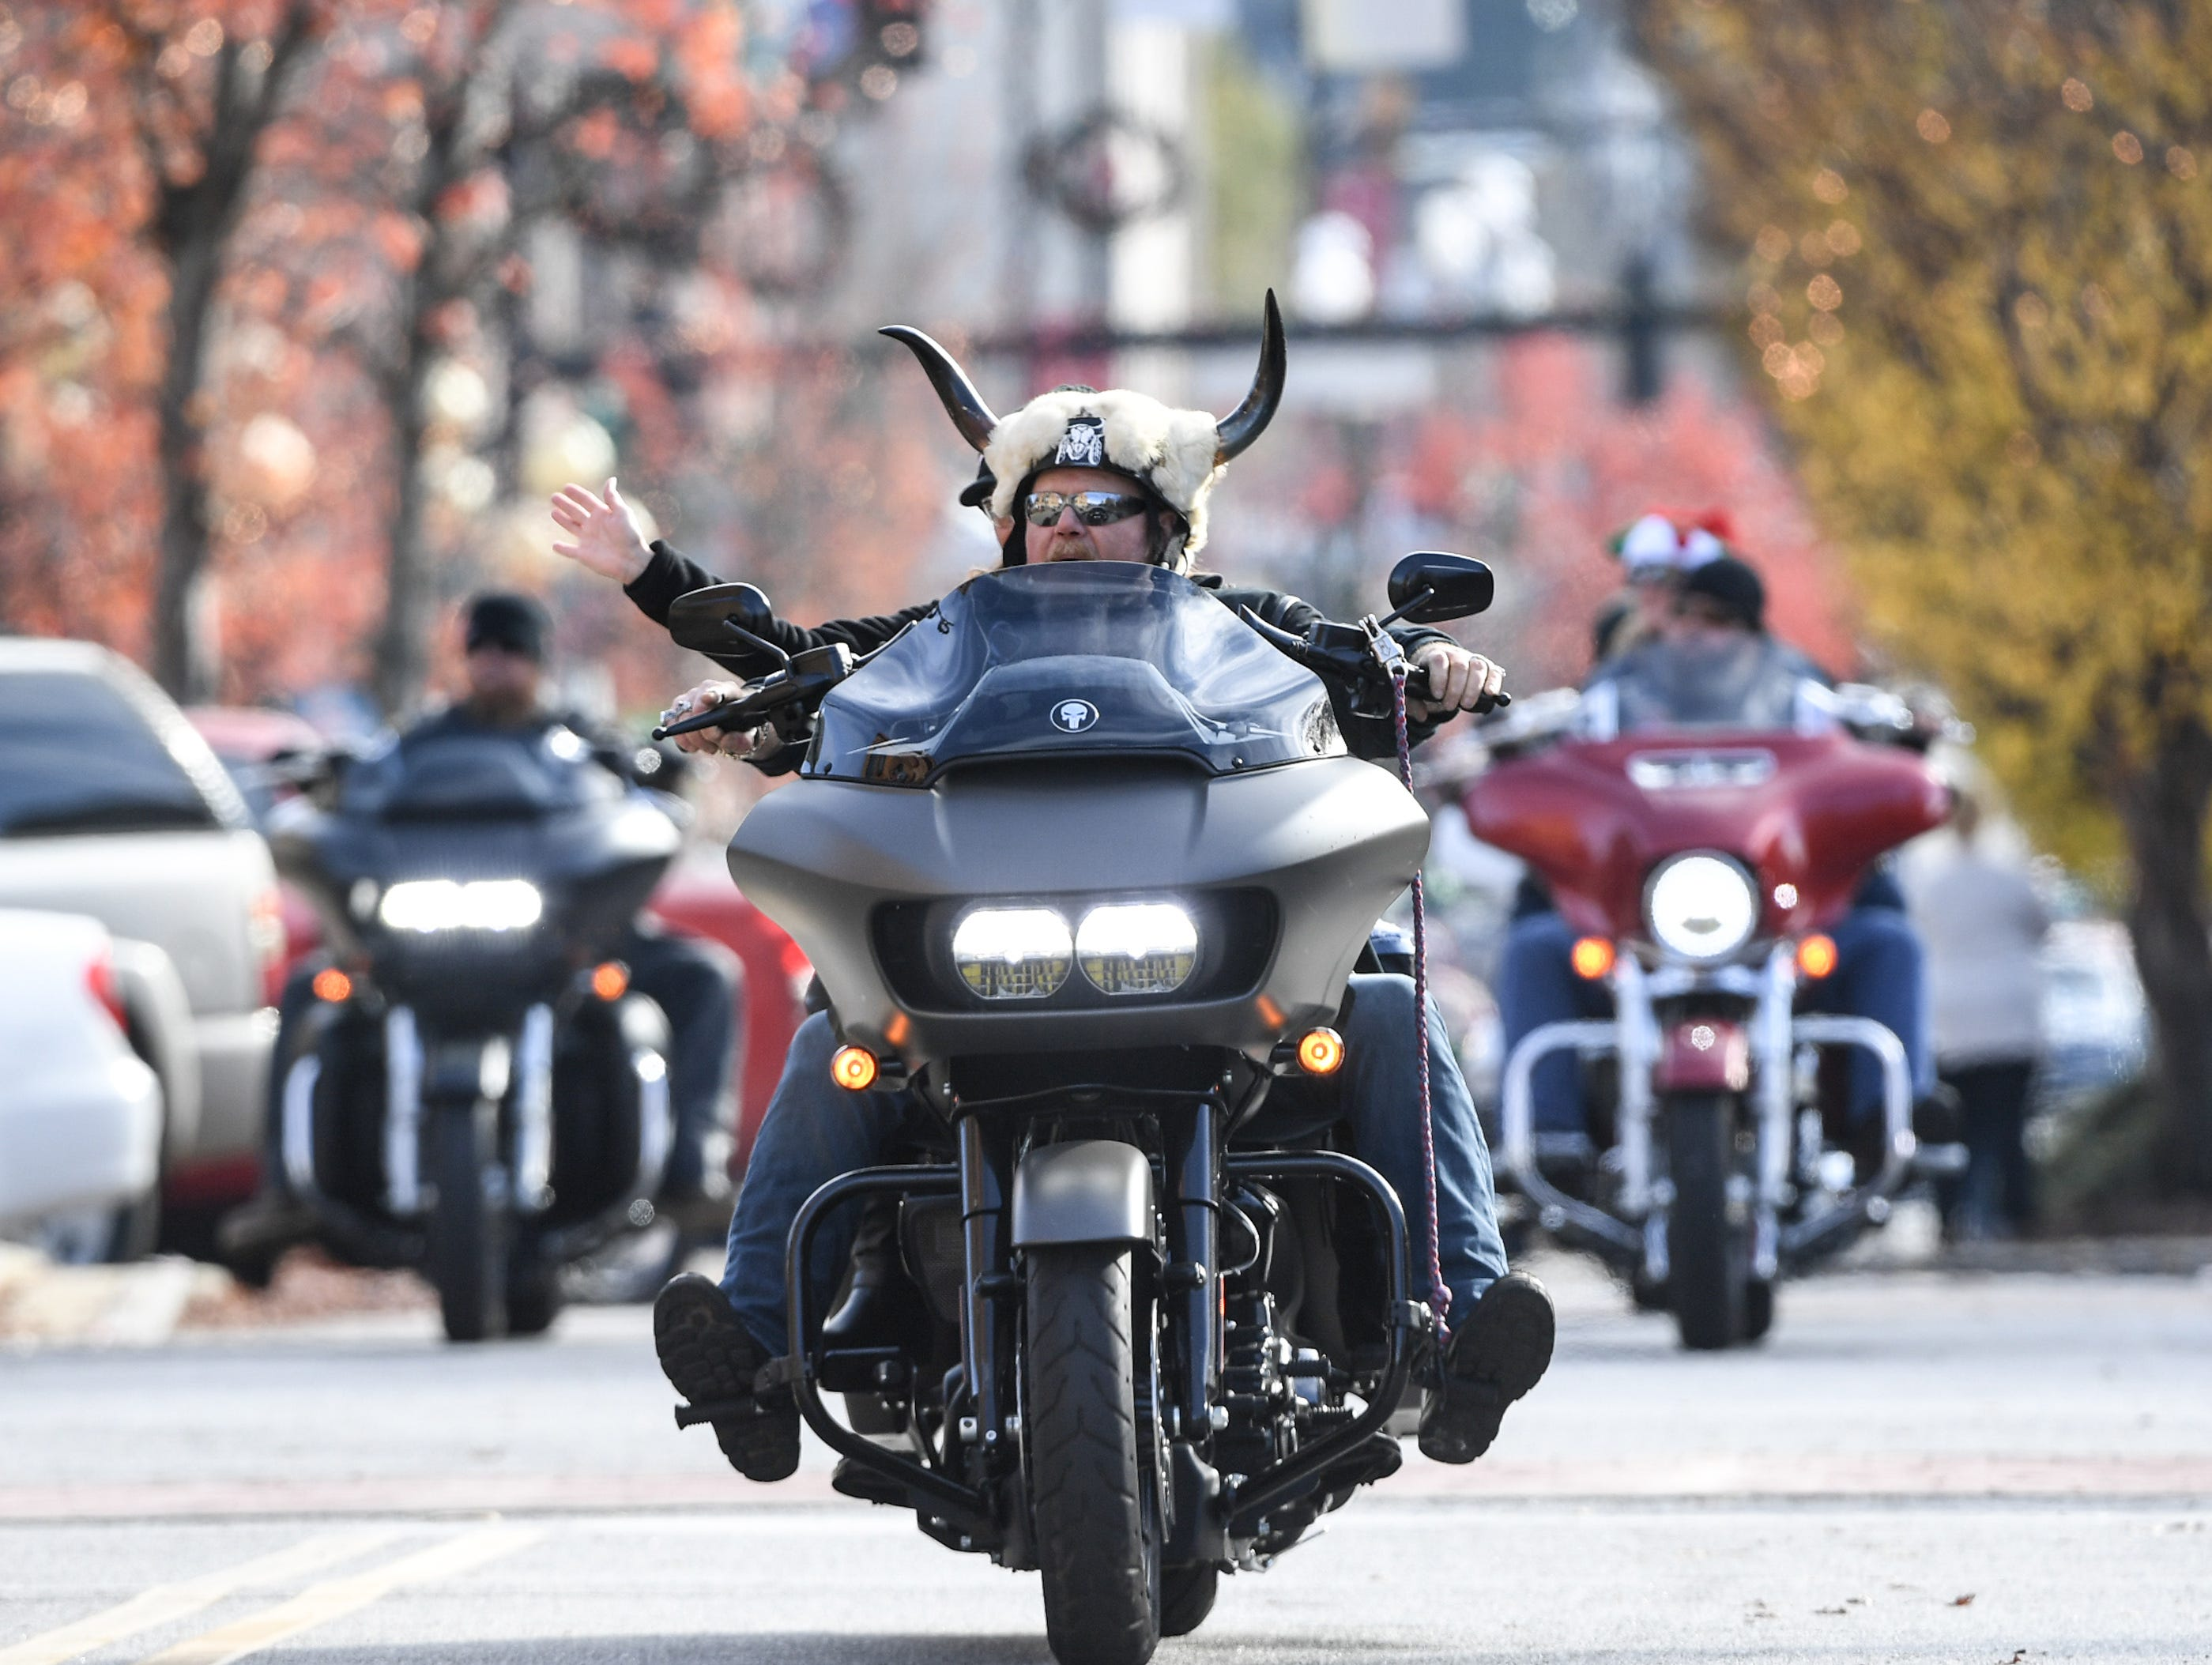 Motorcyclists ride in the 38th Jack Hurley Toy Parade in Anderson on Sunday, November 25, 2018. The parade started at White Jones Hardware parking lot in the Watson Village, followed along Main Street to the Civic Center of Anderson where toys were donated to Anderson Cares and Shares, helping 350 families with Christmas gifts. The Anderson Toy Parade is also in memory of Charles and Diane Bolt.